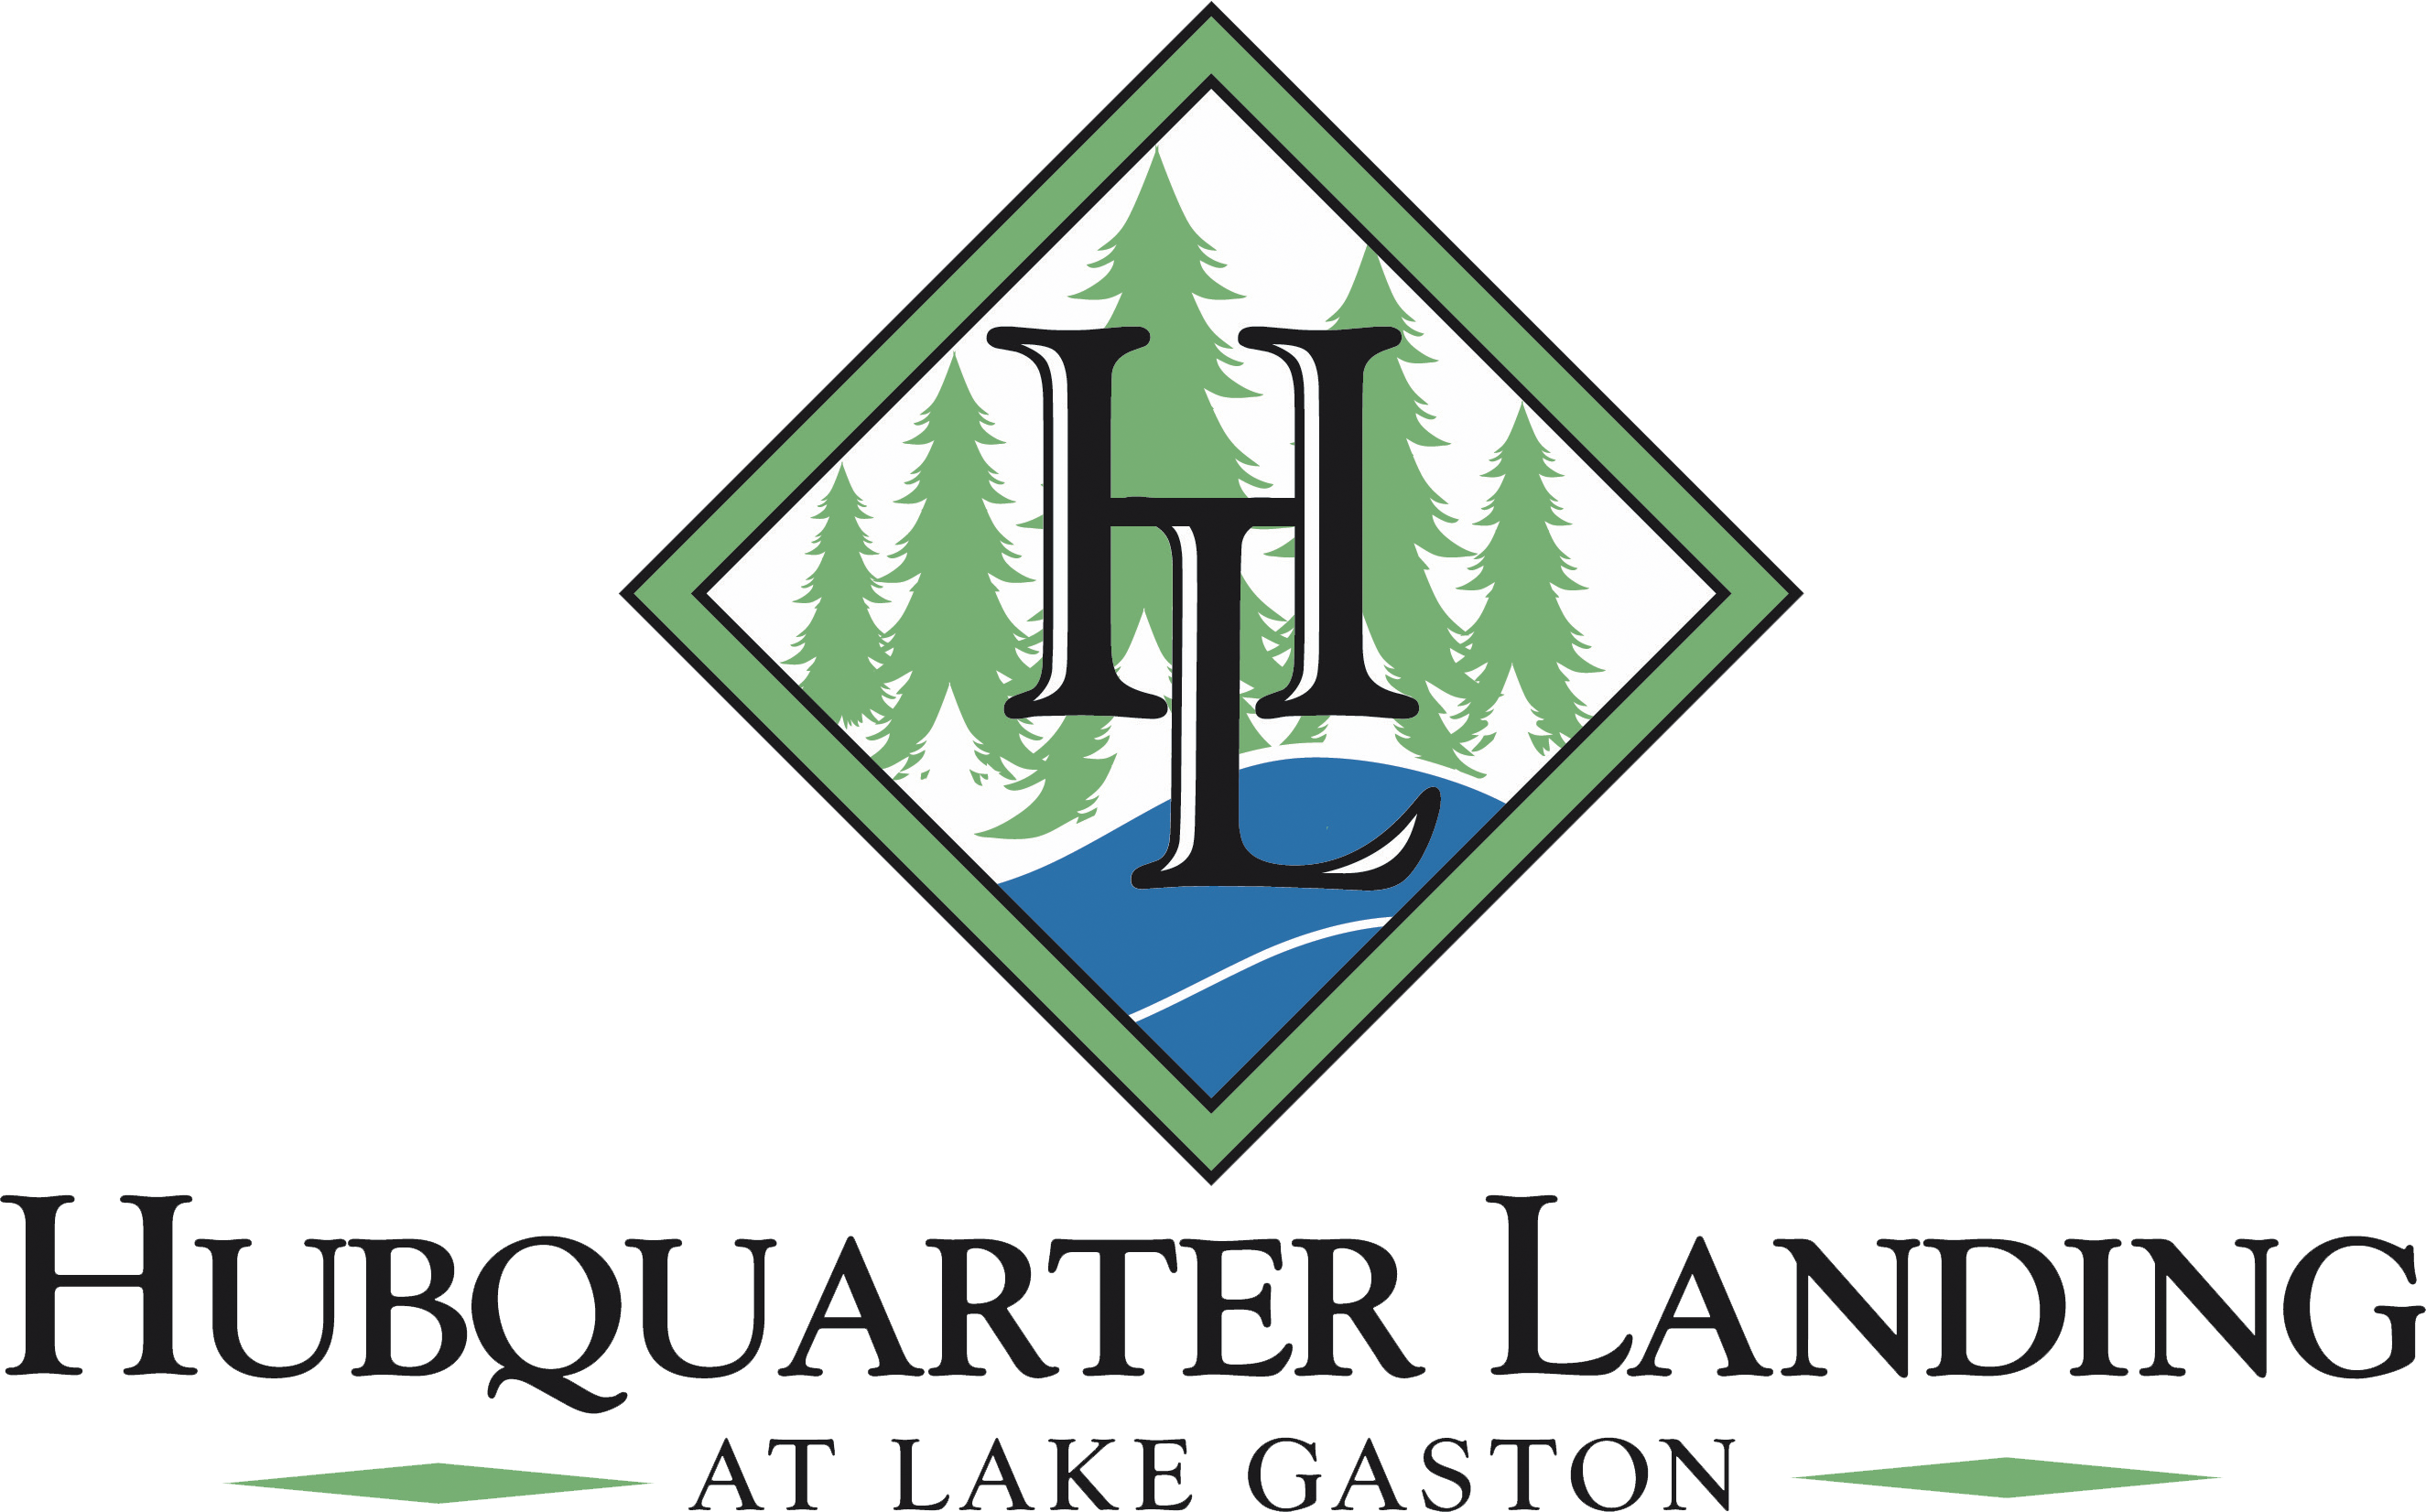 Hubquarter Landing at Lake Gaston - Luxurious lakefront Real Estate